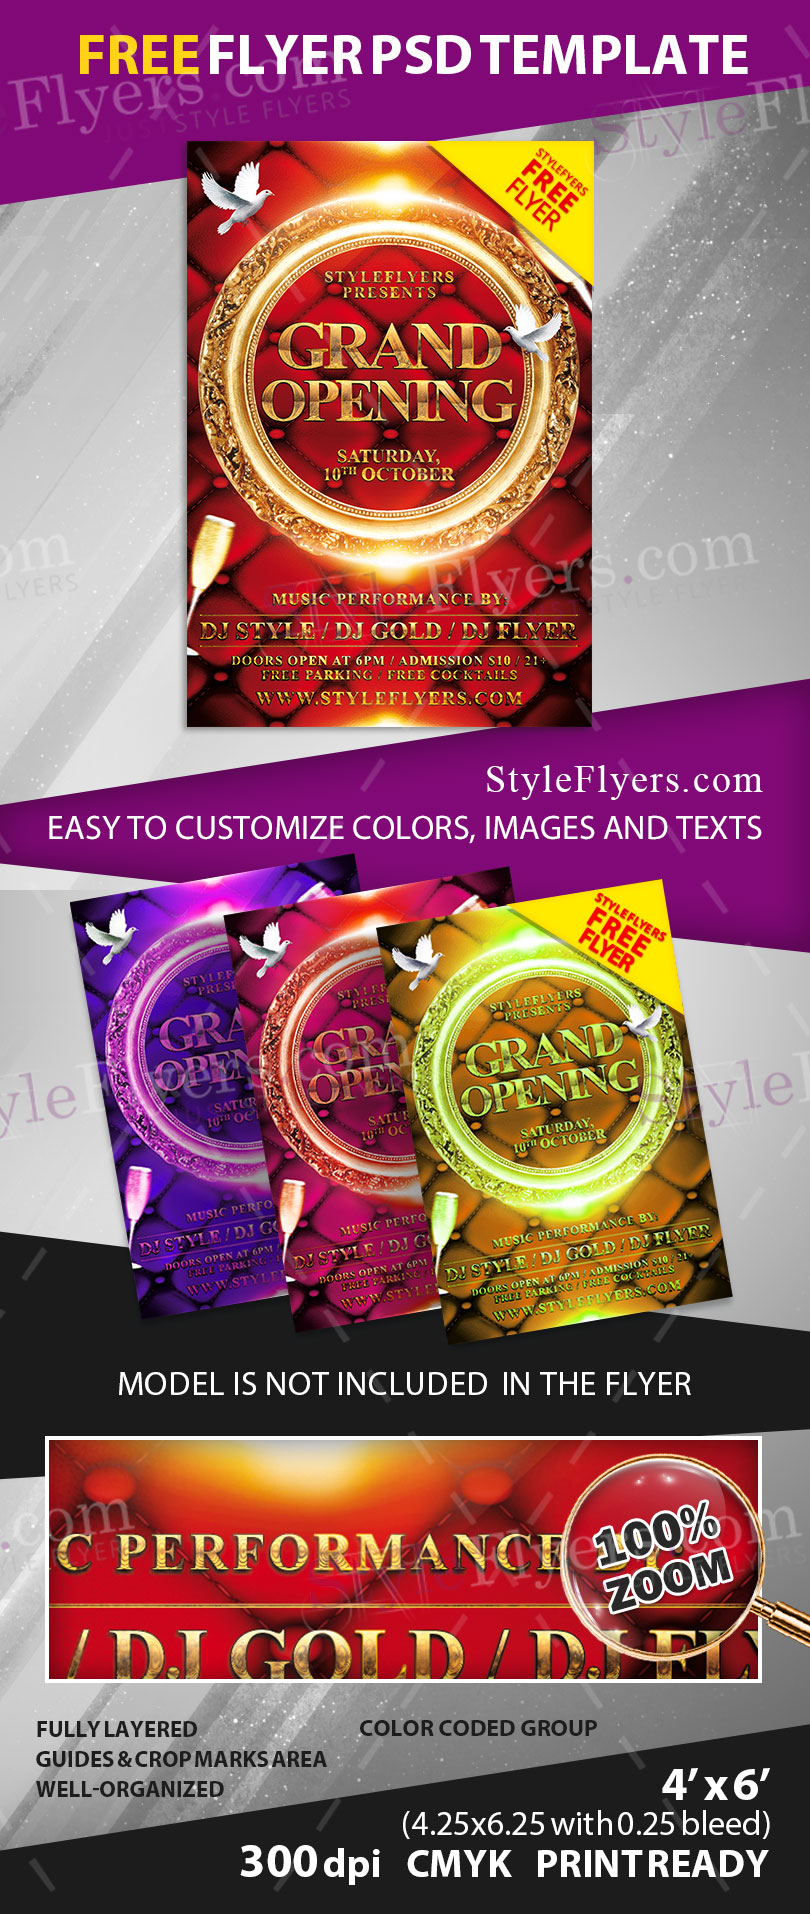 grand opening psd flyer template 11404 grand opening psd flyer template